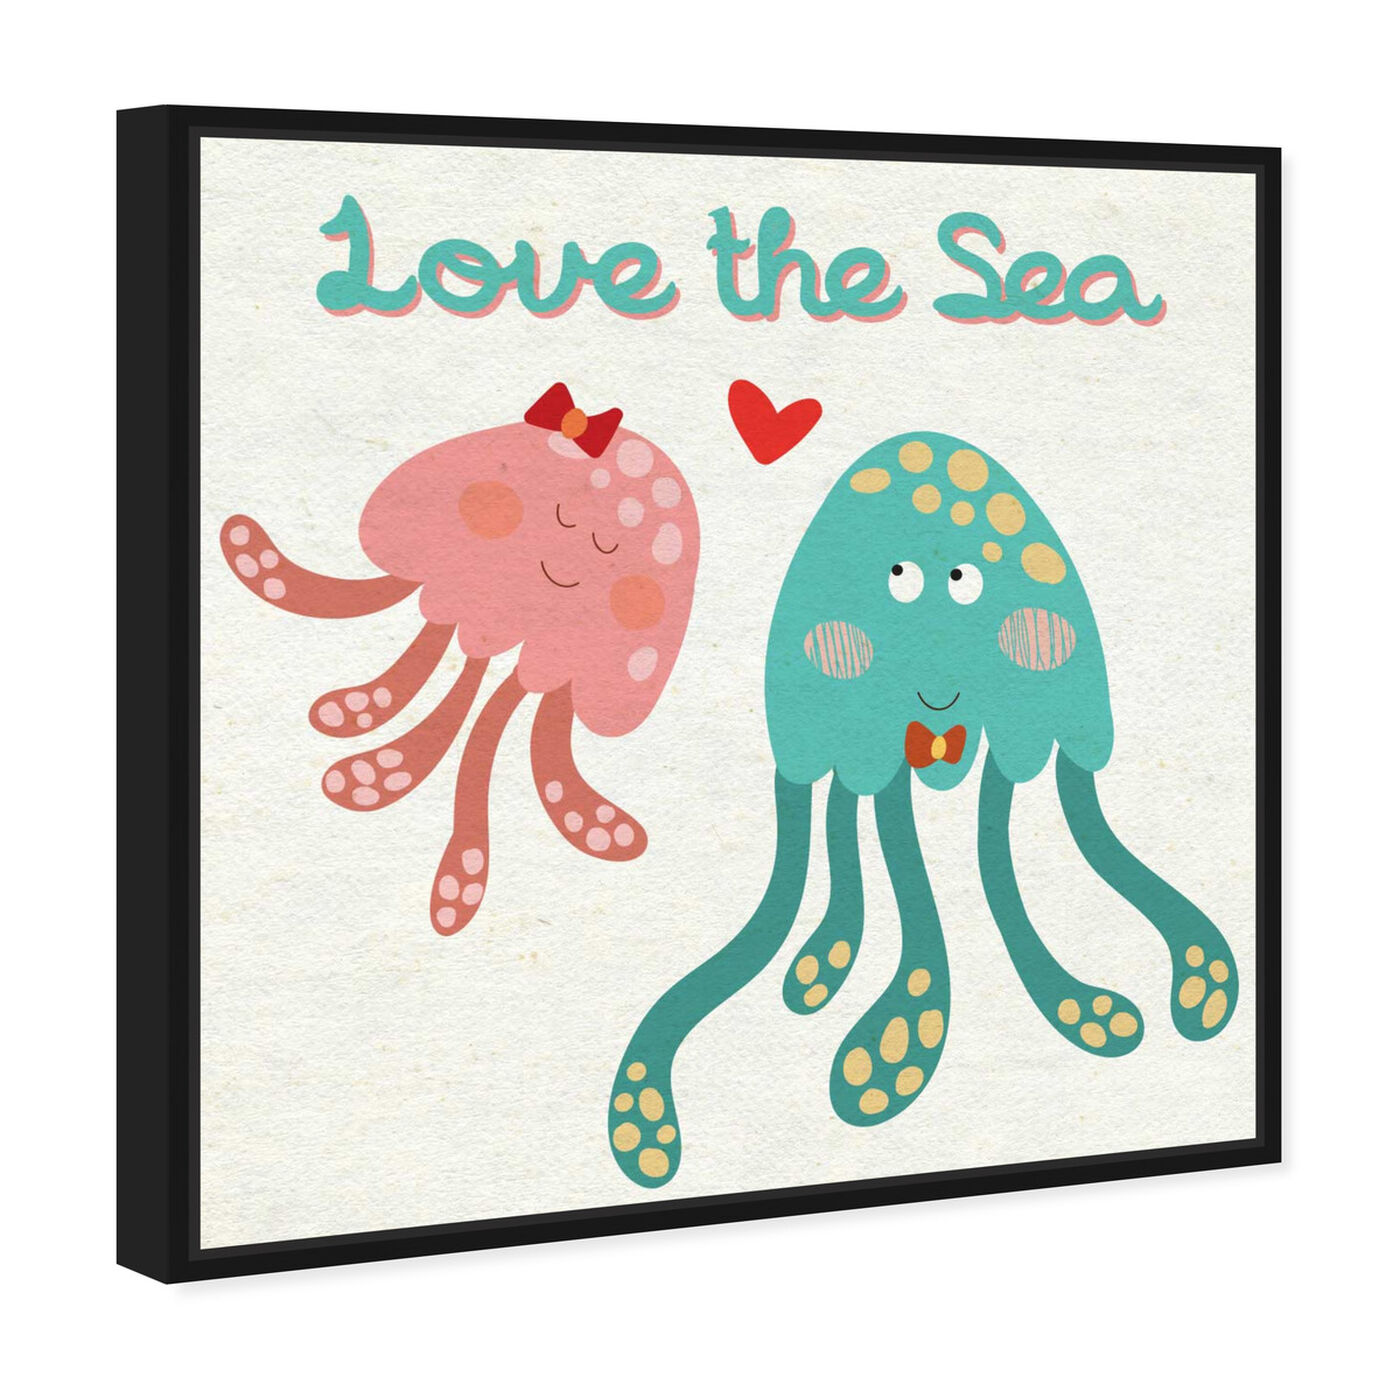 Angled view of Love the Sea featuring animals and sea animals art.